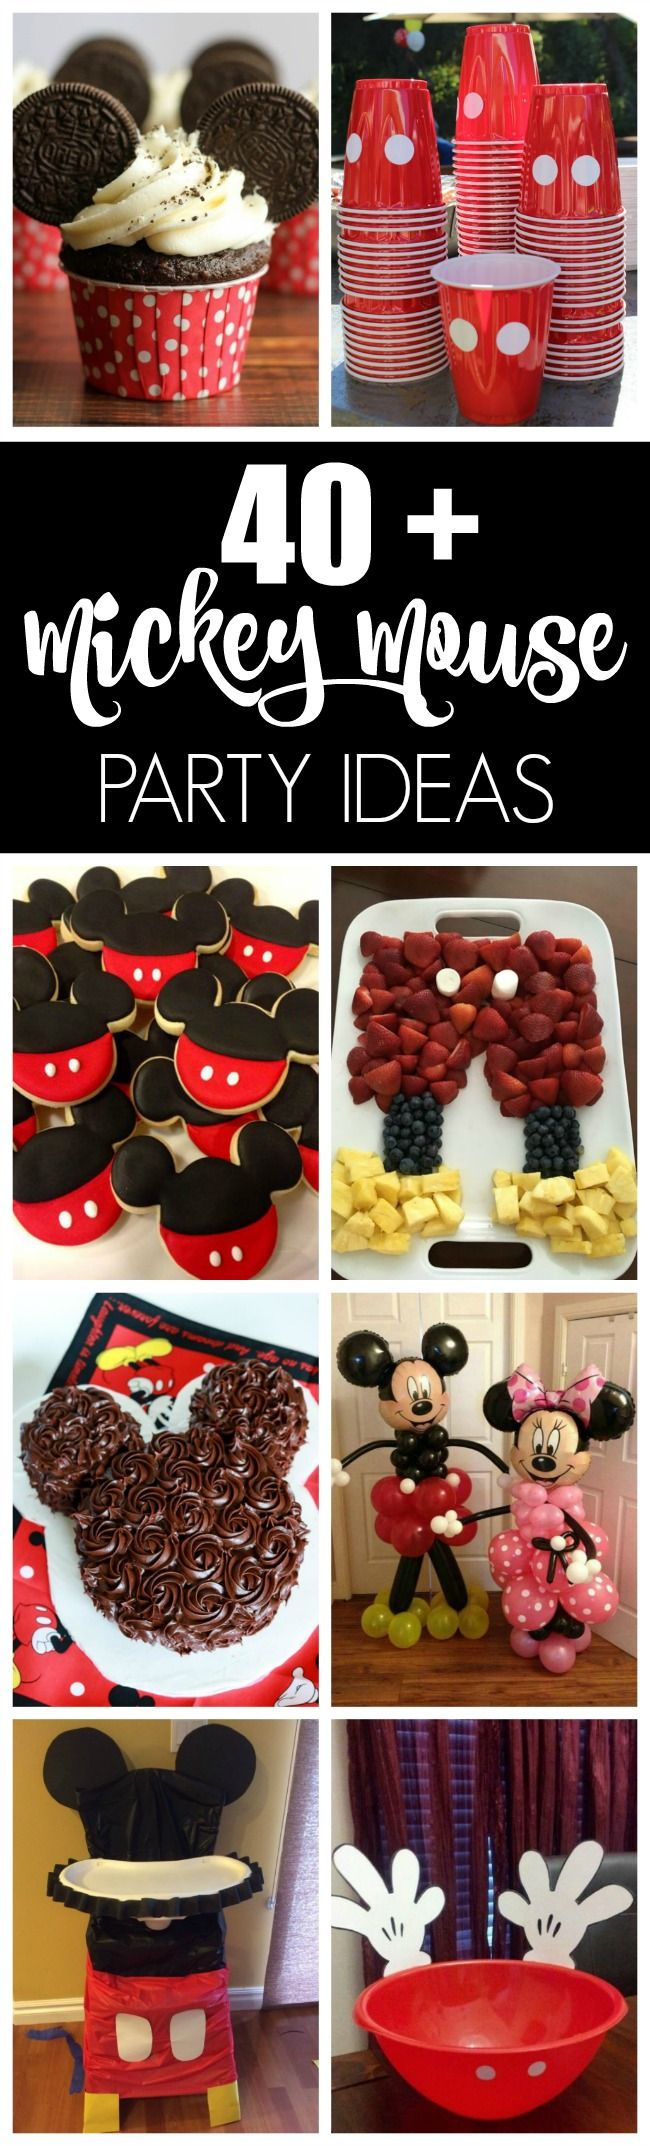 40 Mickey Mouse Party Ideas Mickeys Clubhouse Mickey party